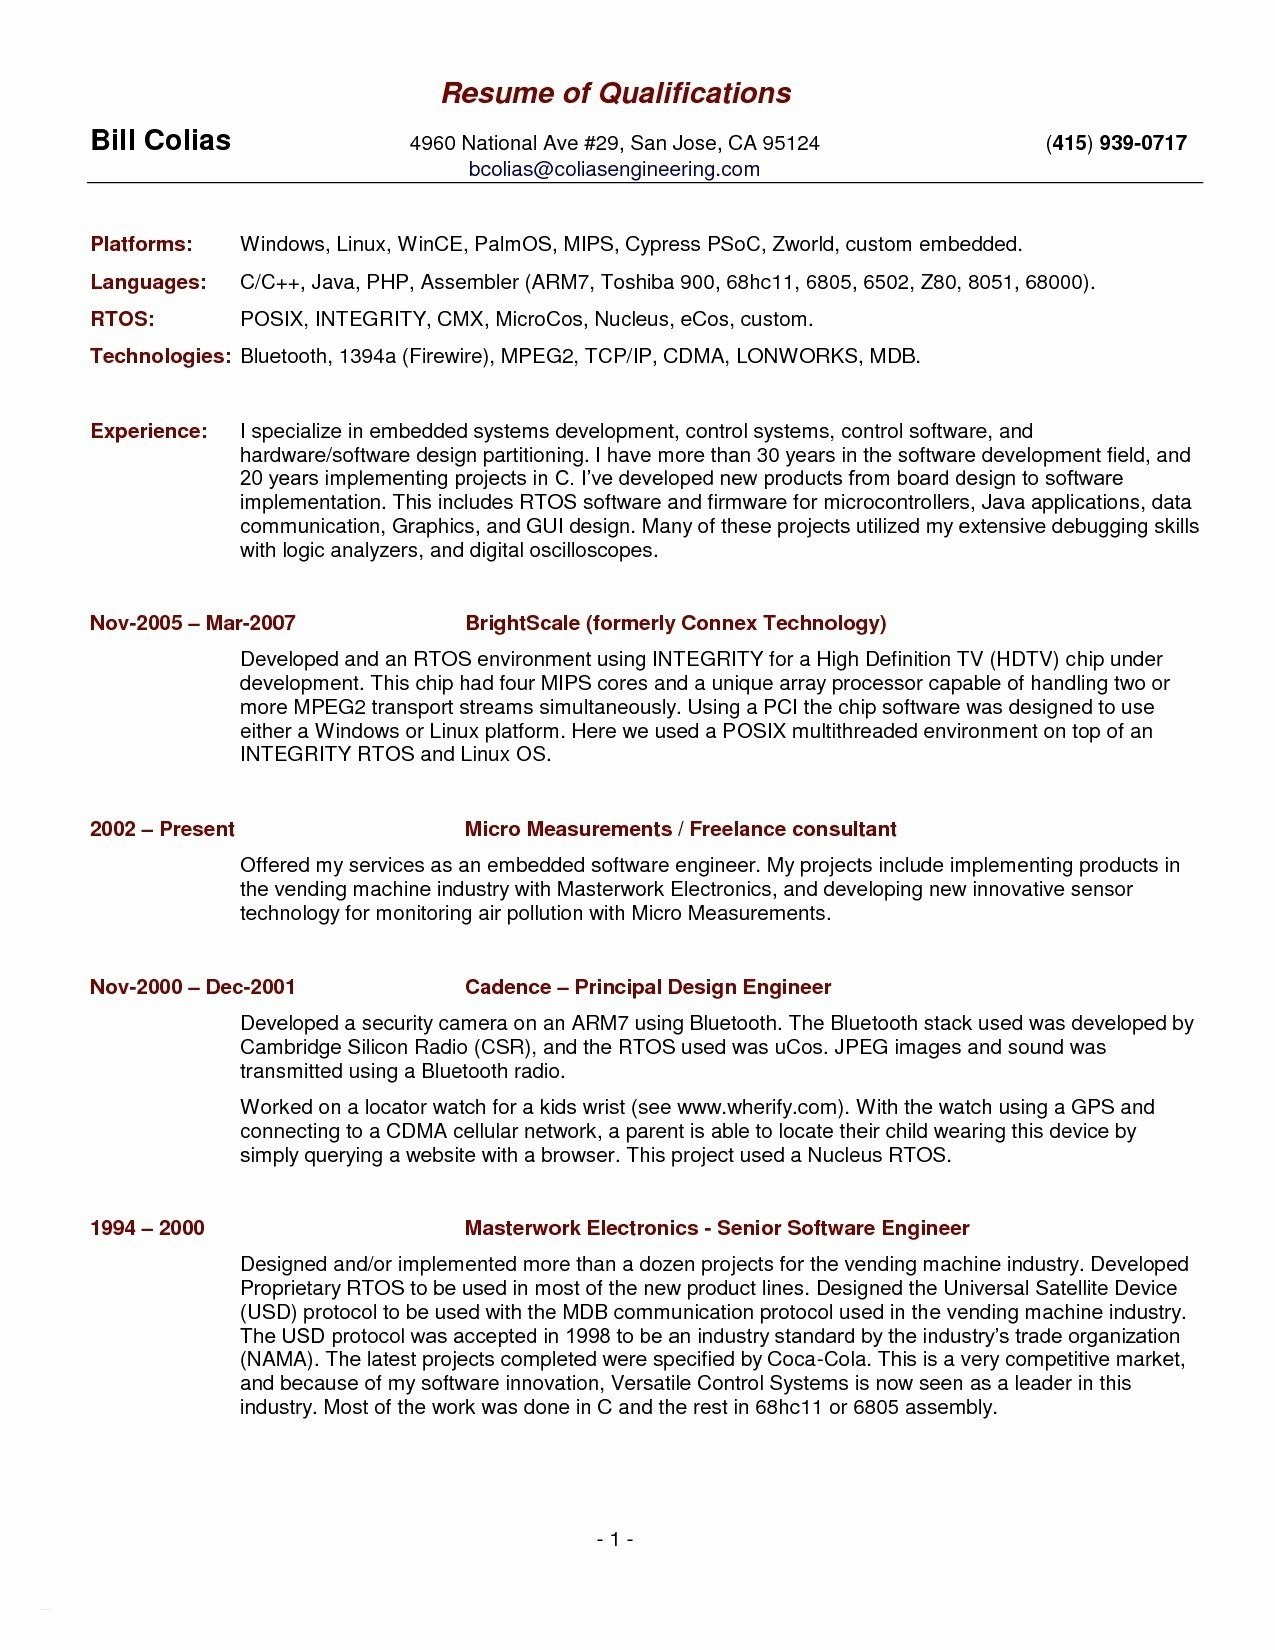 Knock Em Dead Resume Template - 23 Awesome Knock Em Dead Resumes